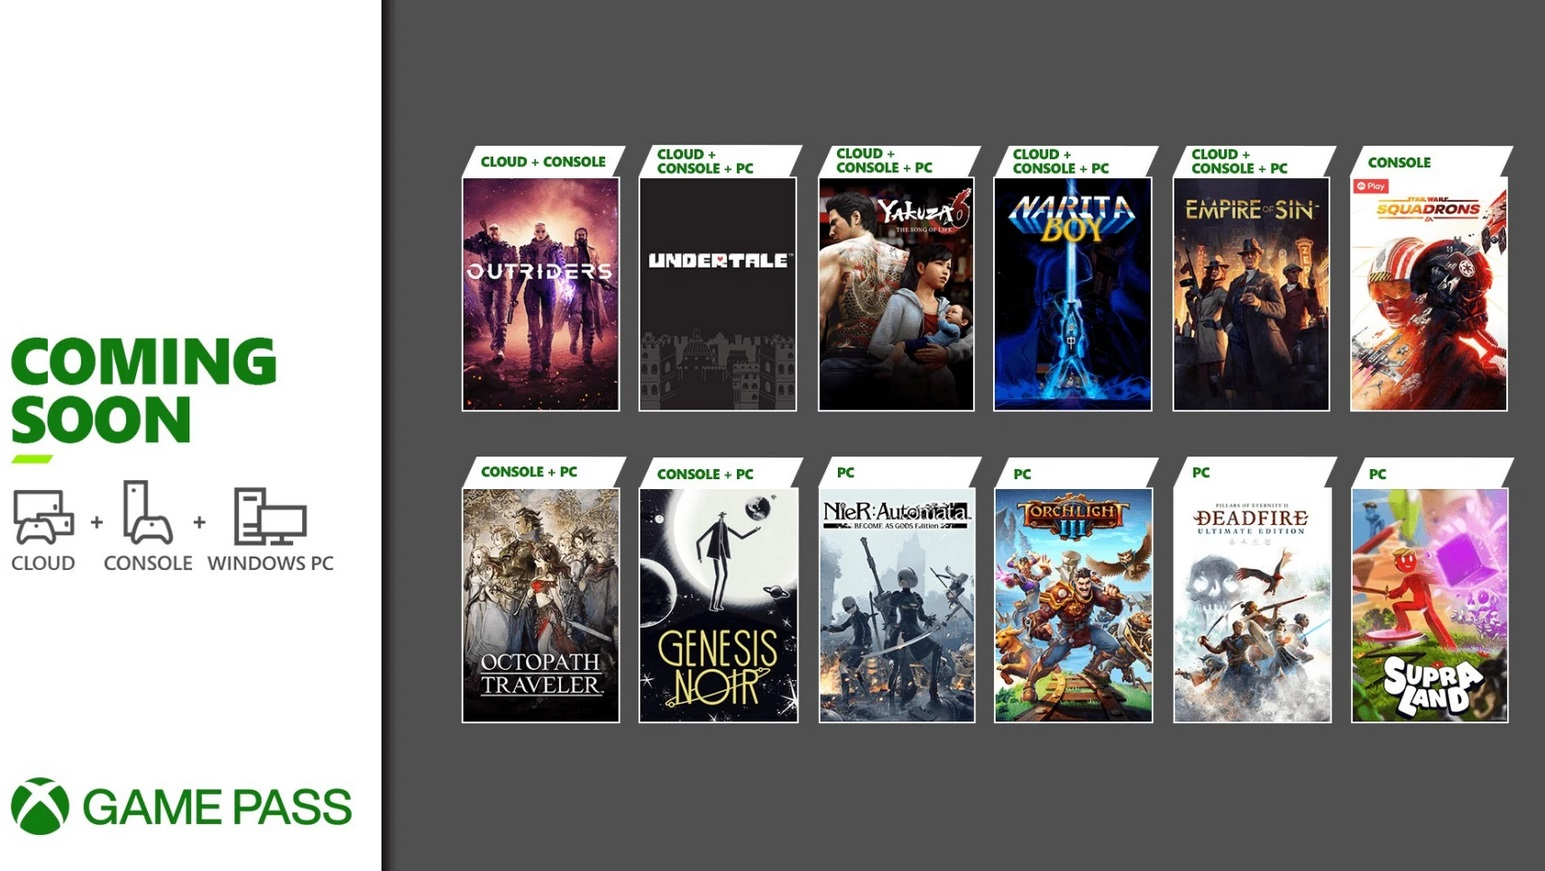 (Update) Xbox Game Pass March headliners include Nier: Automata on PC, Octopath Traveler on Xbox, and Empire of Sin screenshot